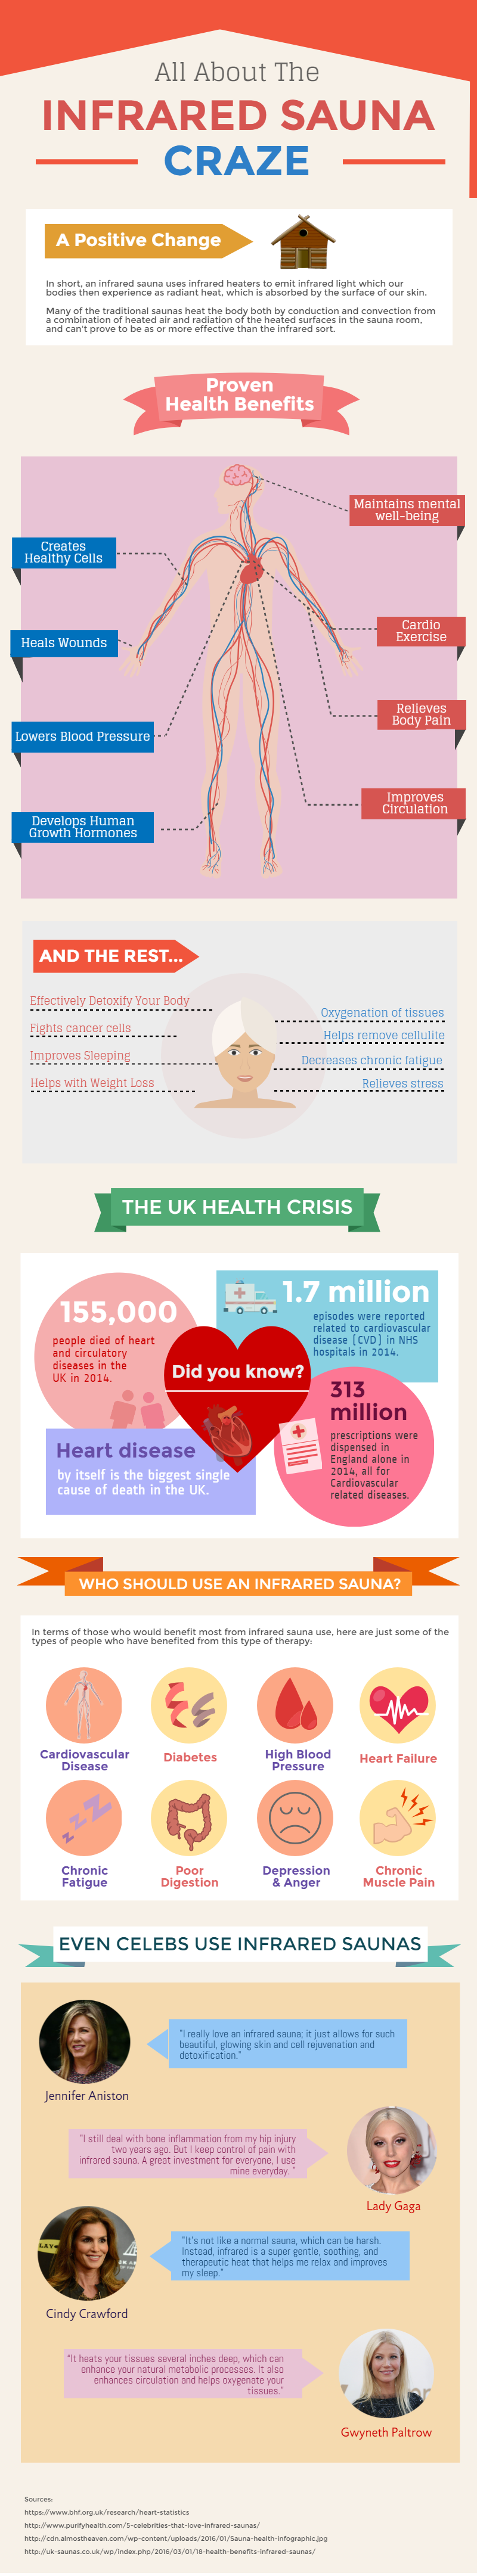 Infrared Sauna Health Benefits Infographic